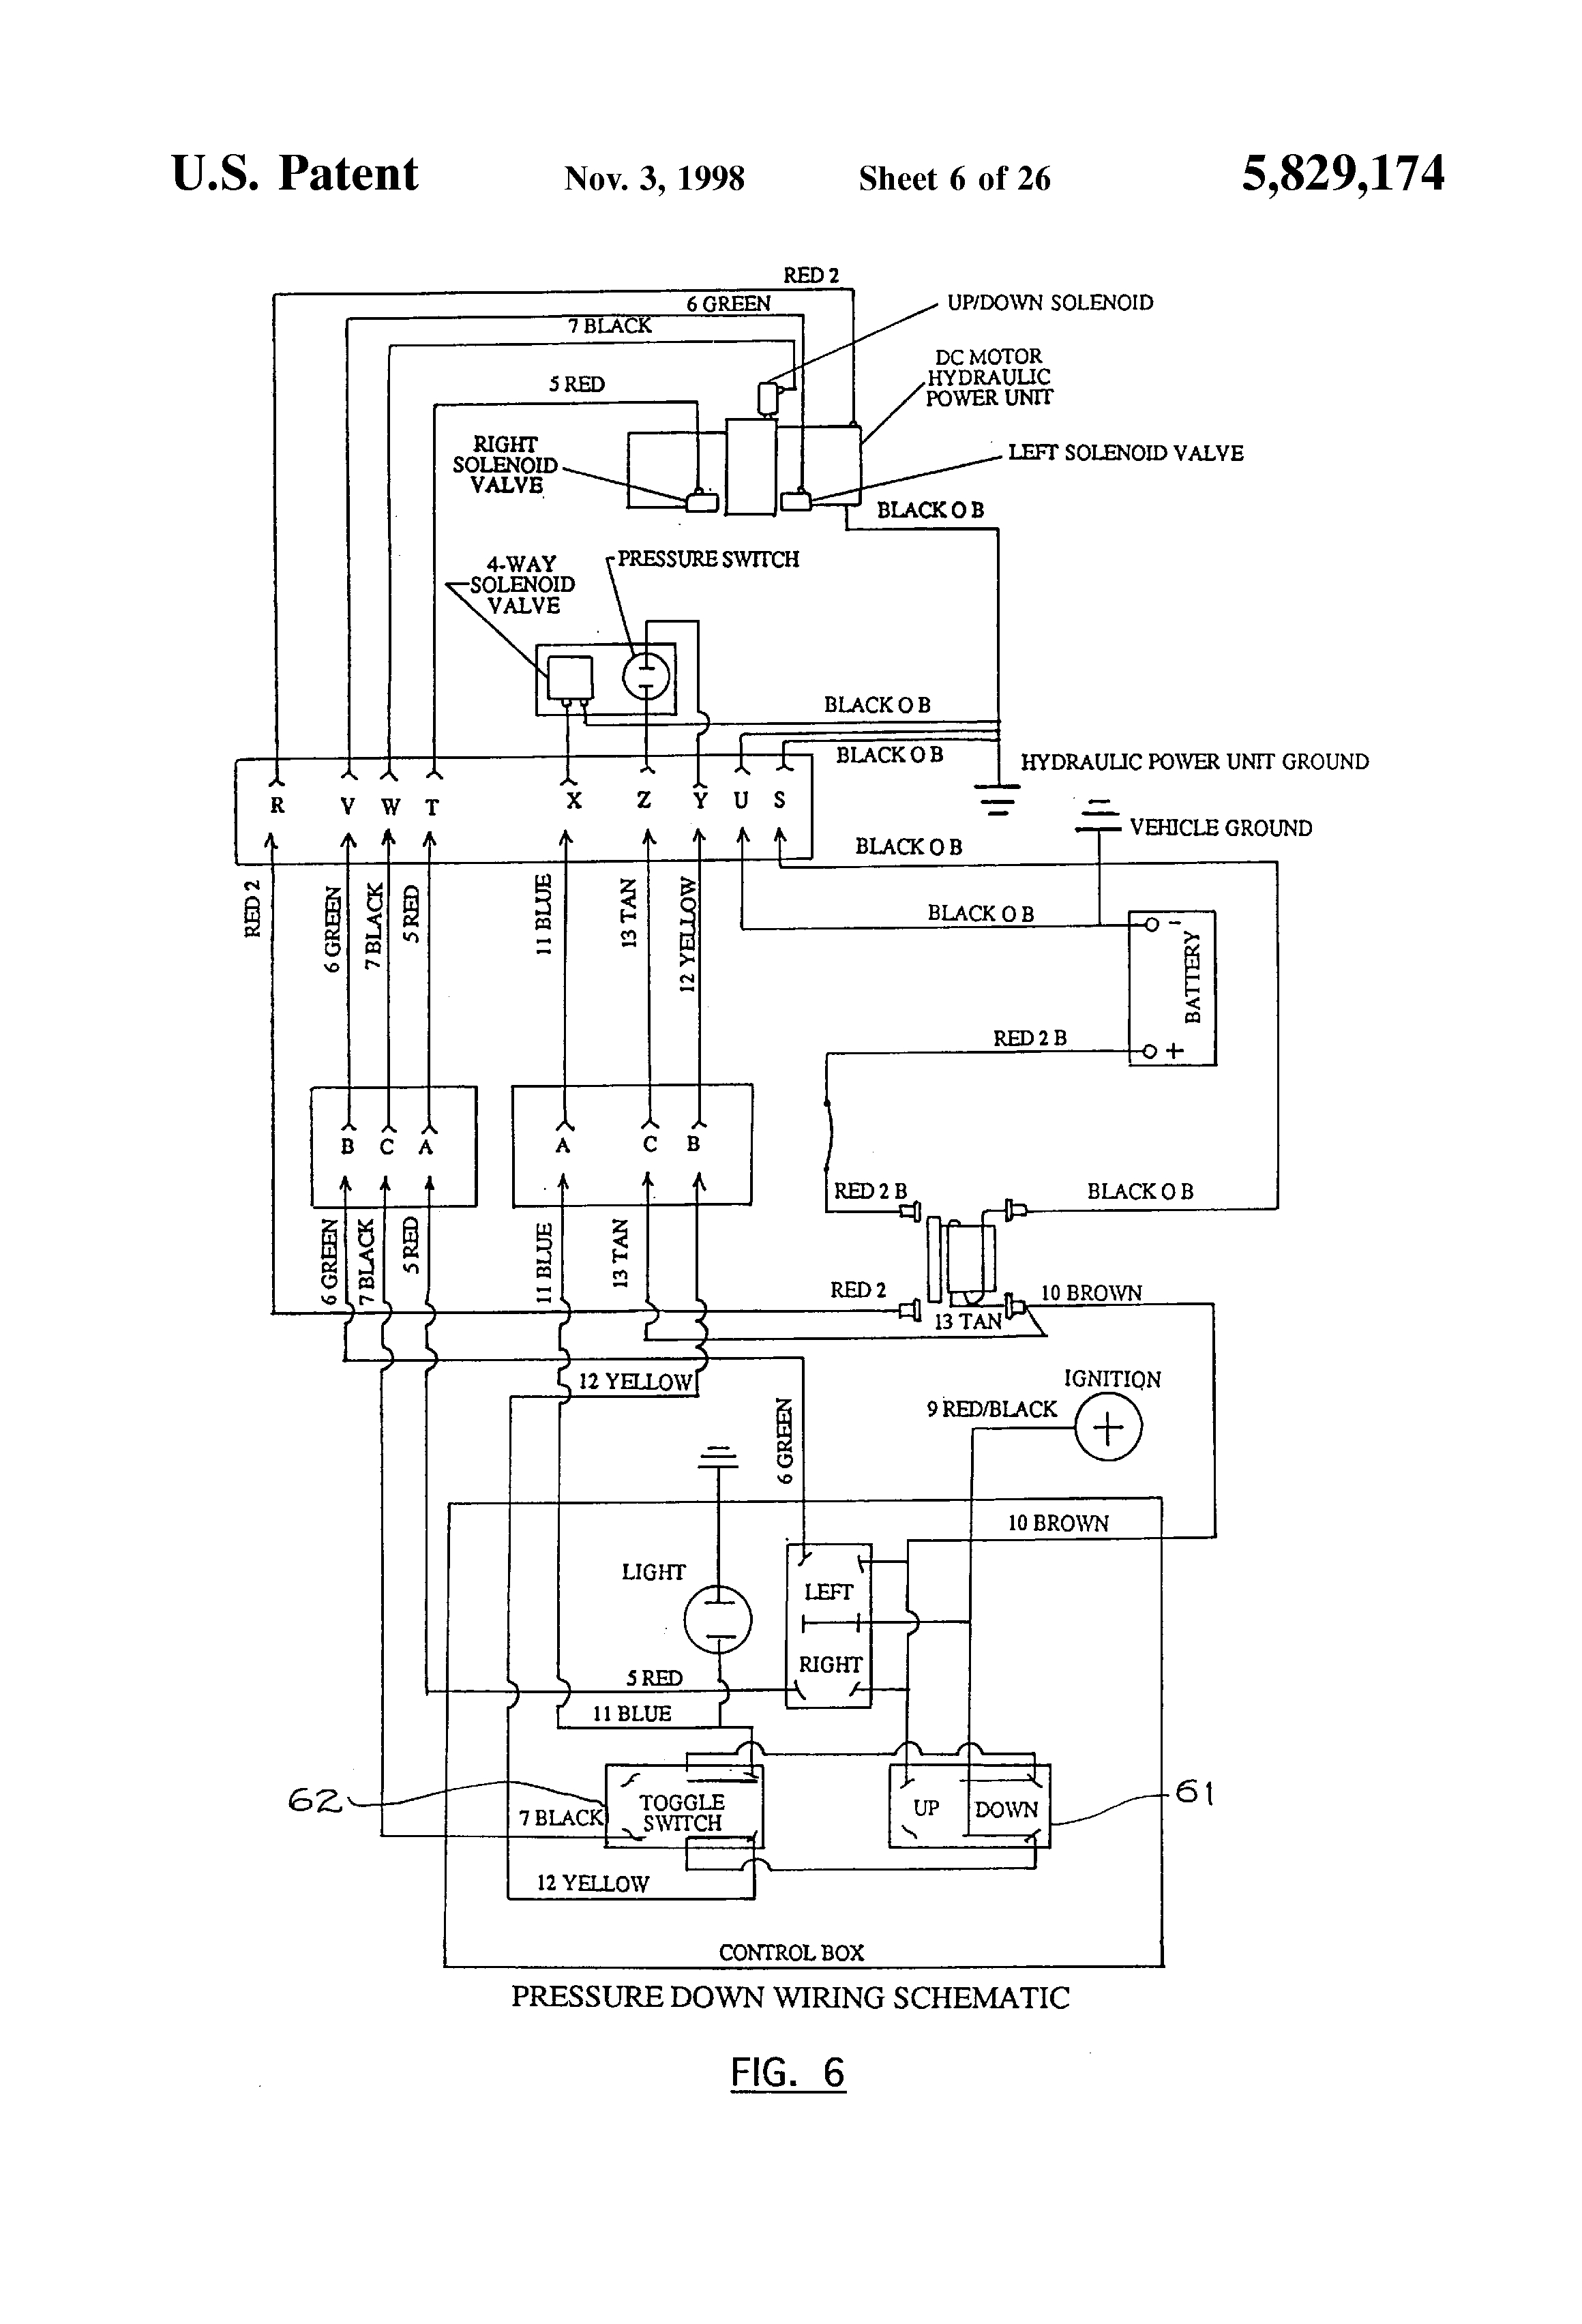 Hiniker Wiring Diagram 97 Dodge Complete Diagrams Harness Images Gallery